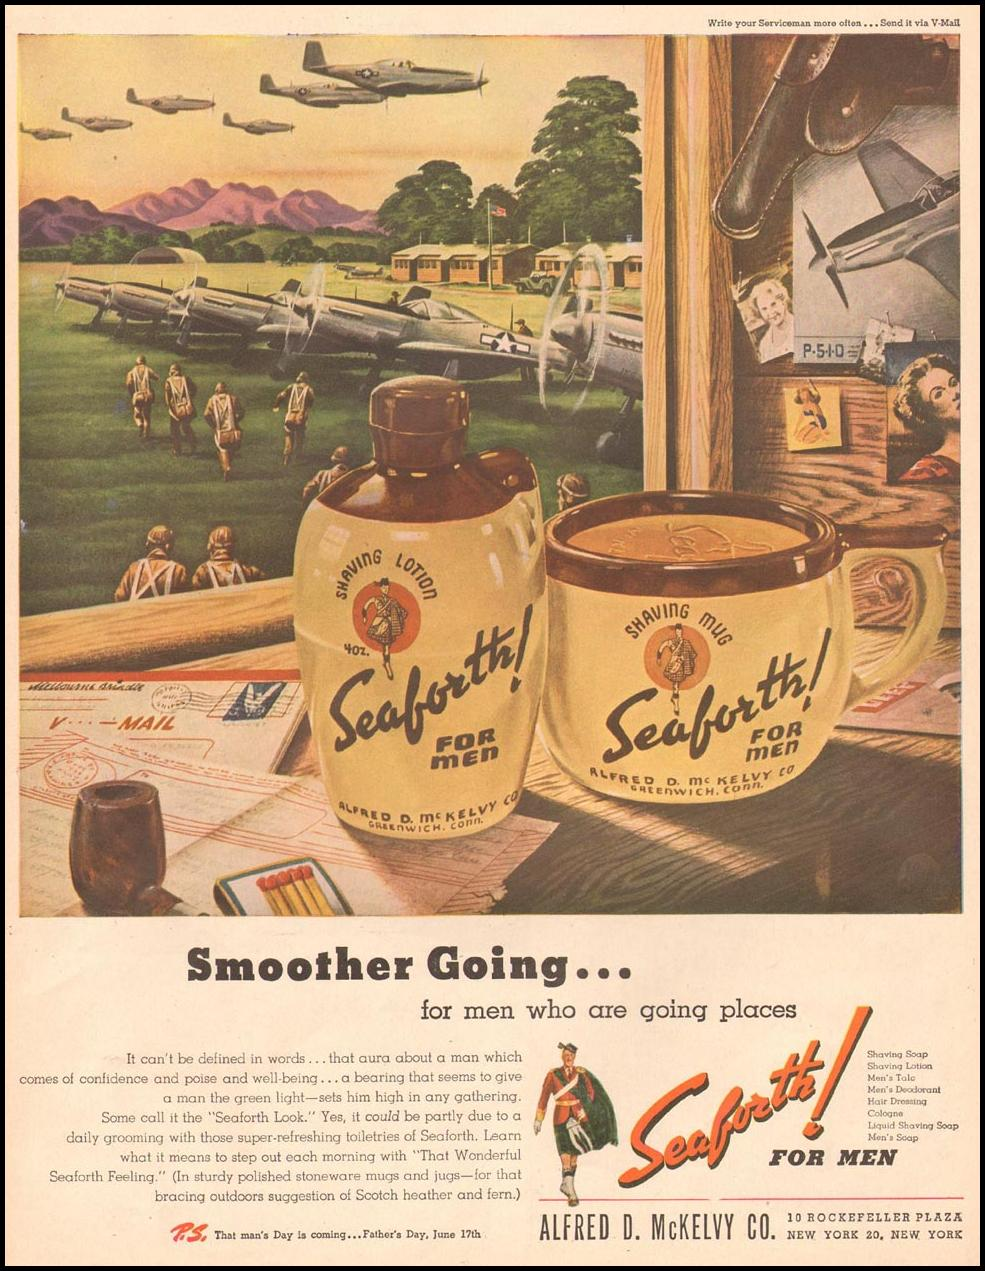 SEAFORTH! FOR MEN LIFE 06/04/1945